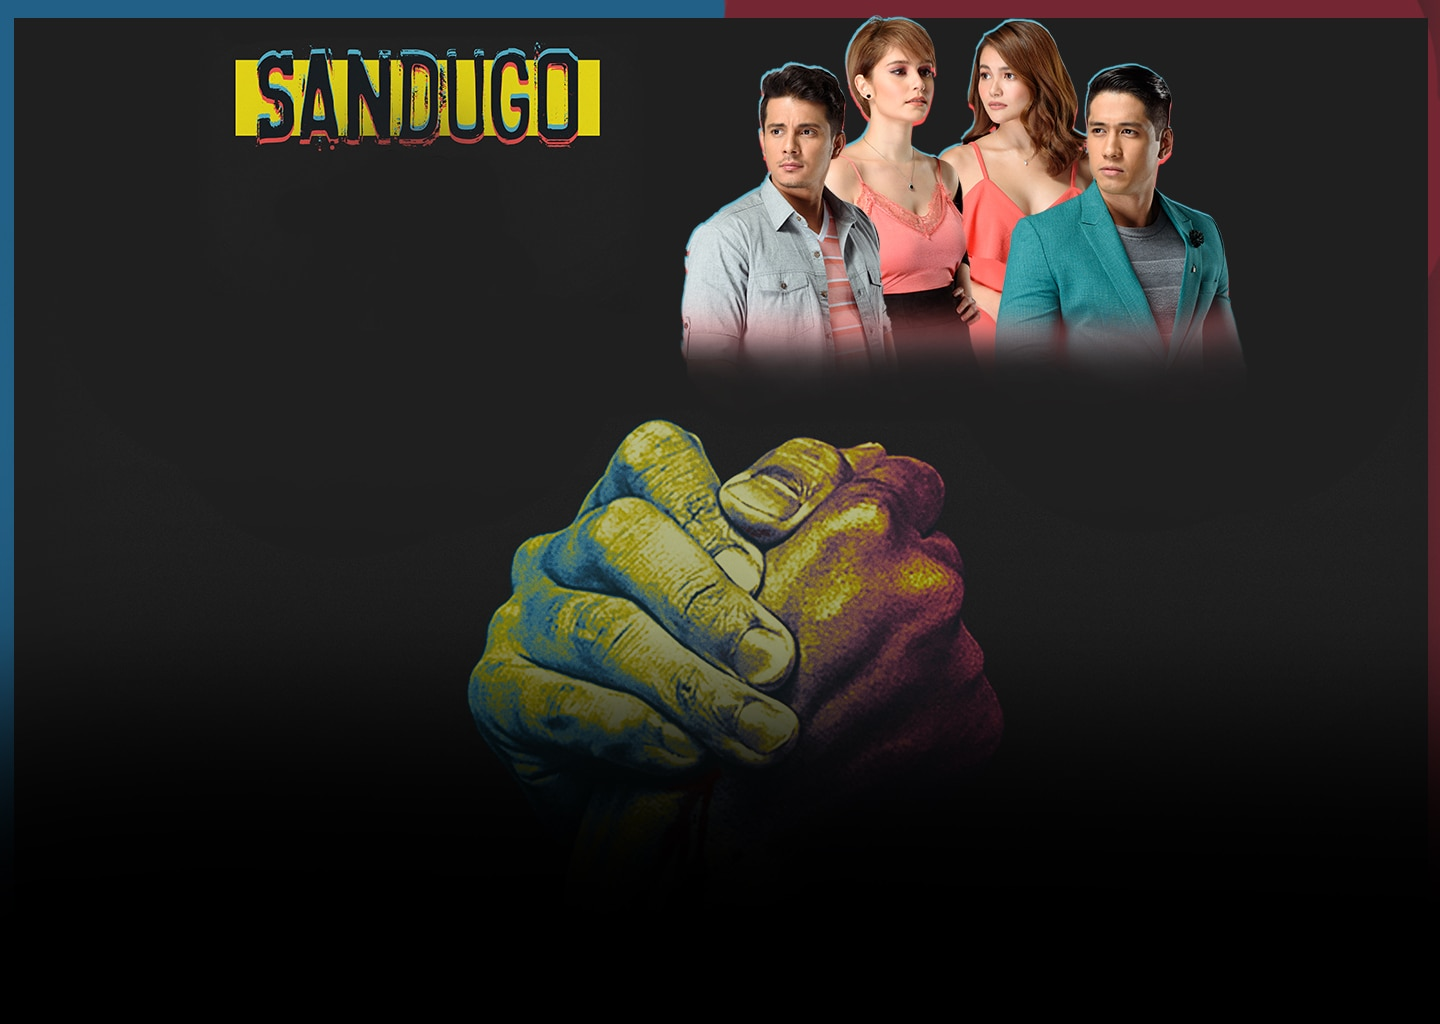 Sandugo ABS-CBN Entertainment